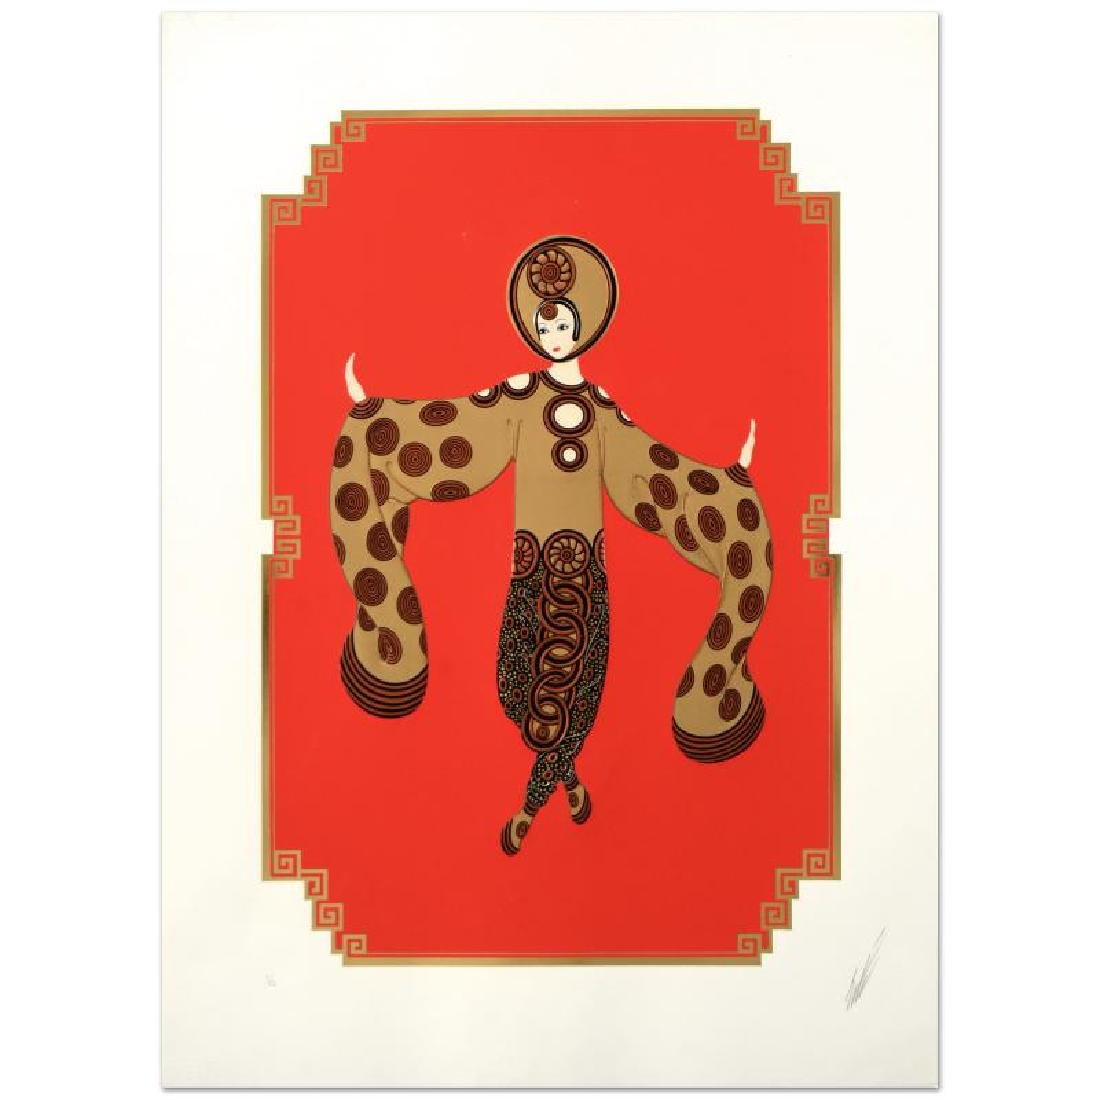 """Erte (1892-1990) """"Willow Tree"""" Limited Edition"""